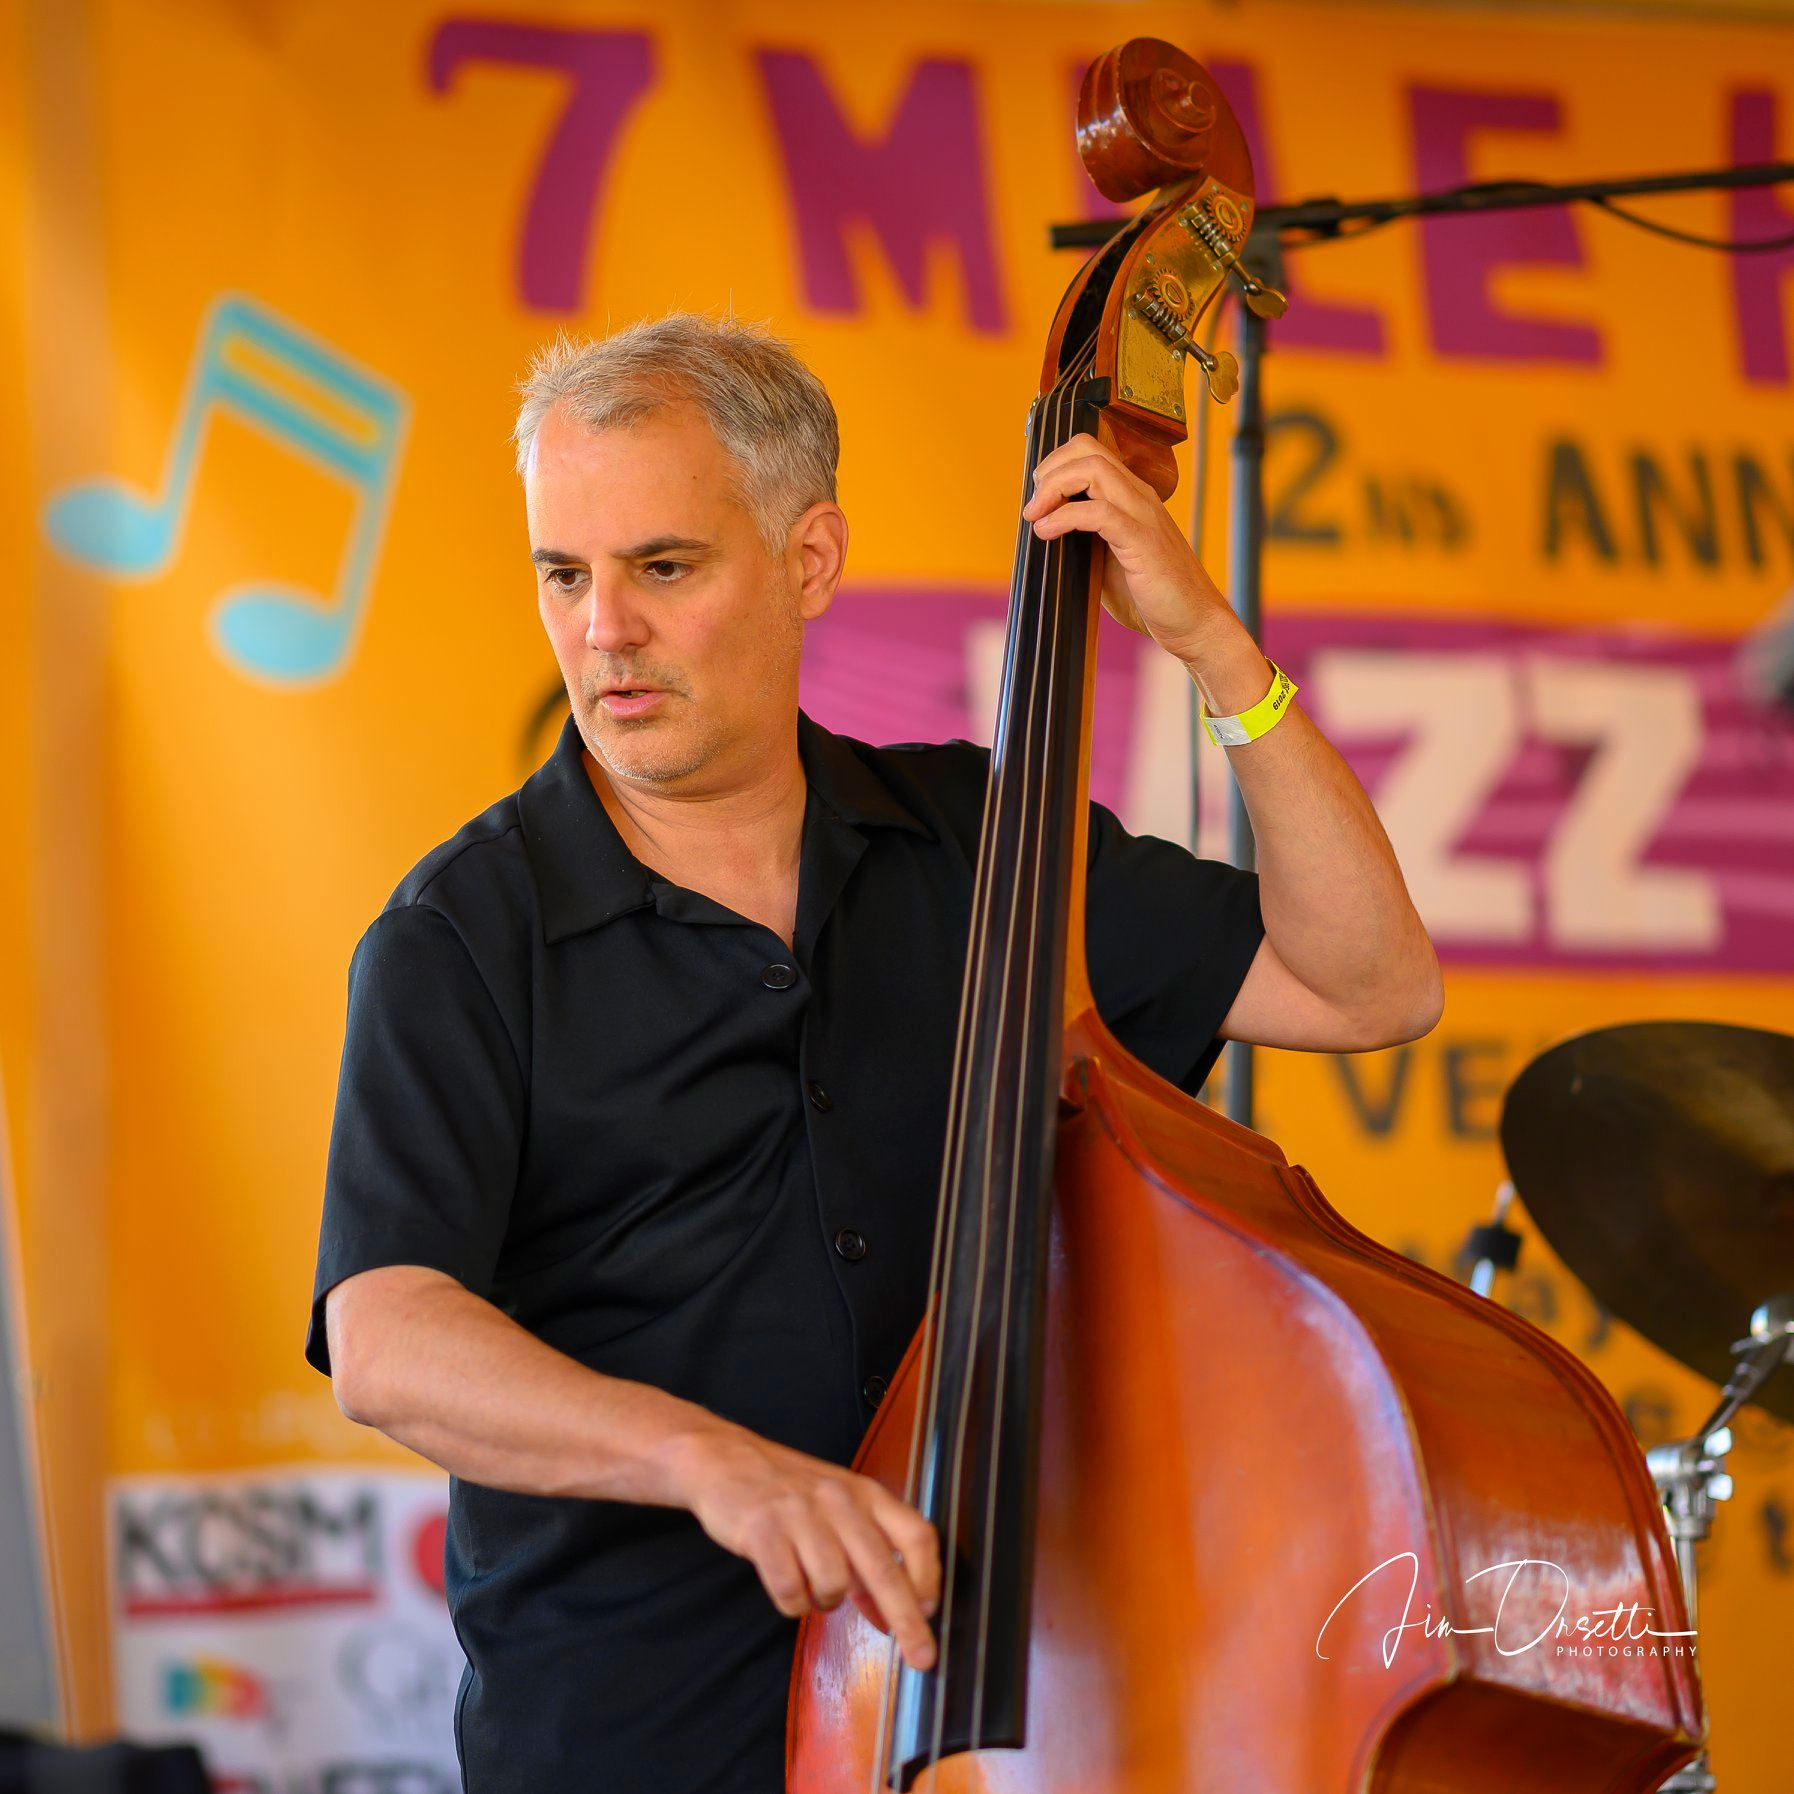 Michael Zisman at the 2nd Annual 7 Mile House Jazz Fest 2019